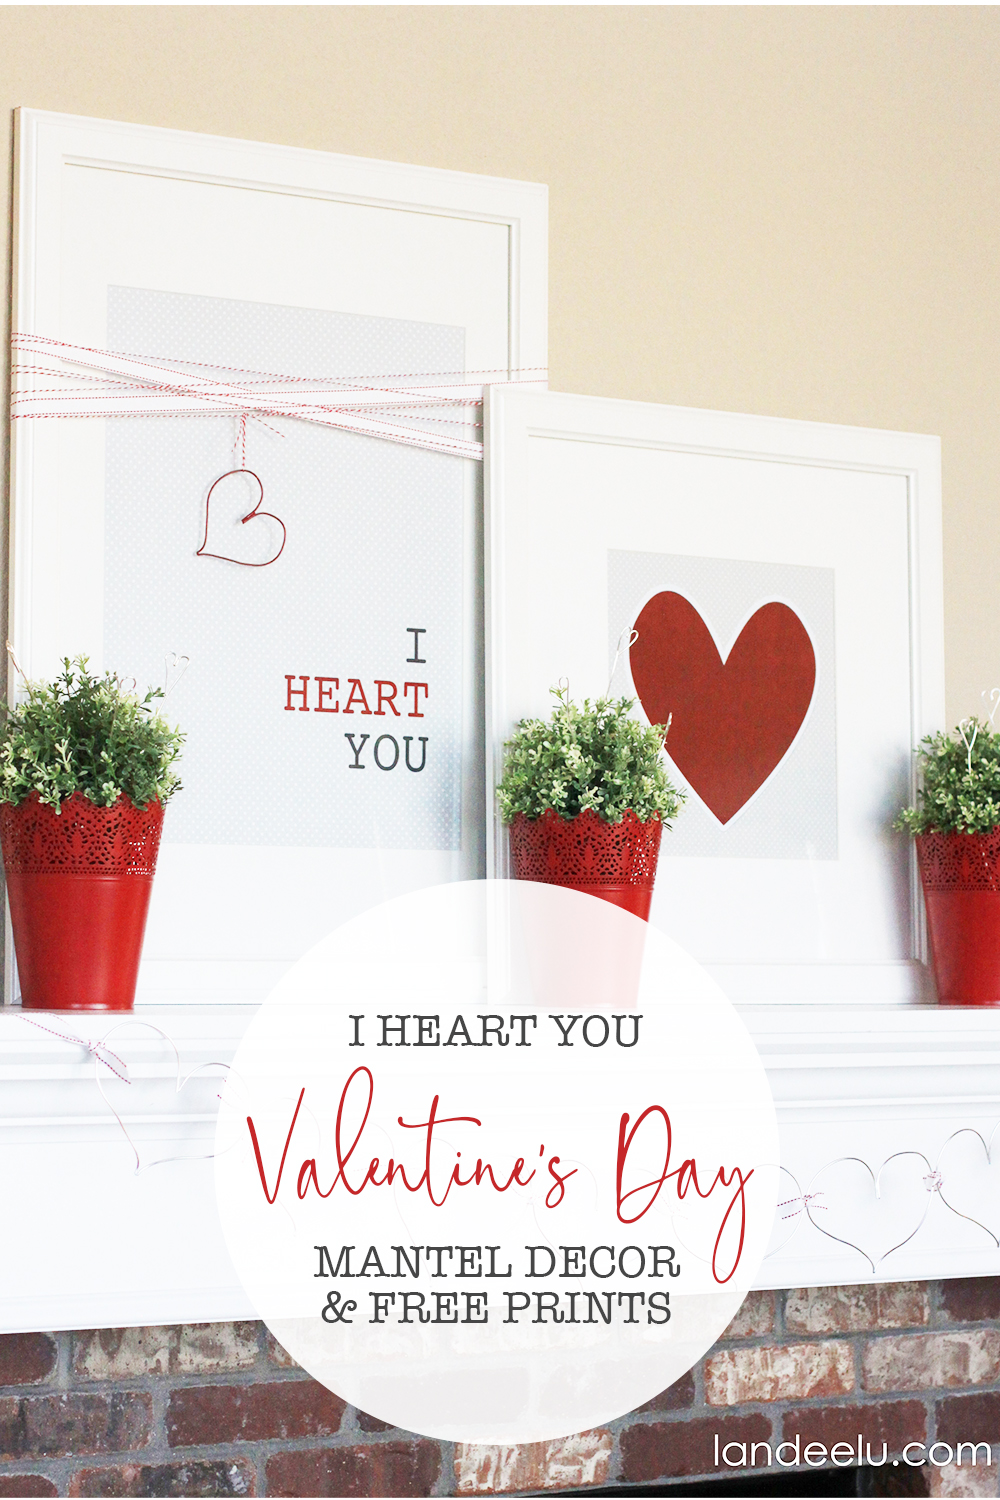 I Heart You! DIY Valentine's Day Mantel - SO pretty and EASY! #valentinesday #valentinesdaydecor #valentinesdaymantel #hearts